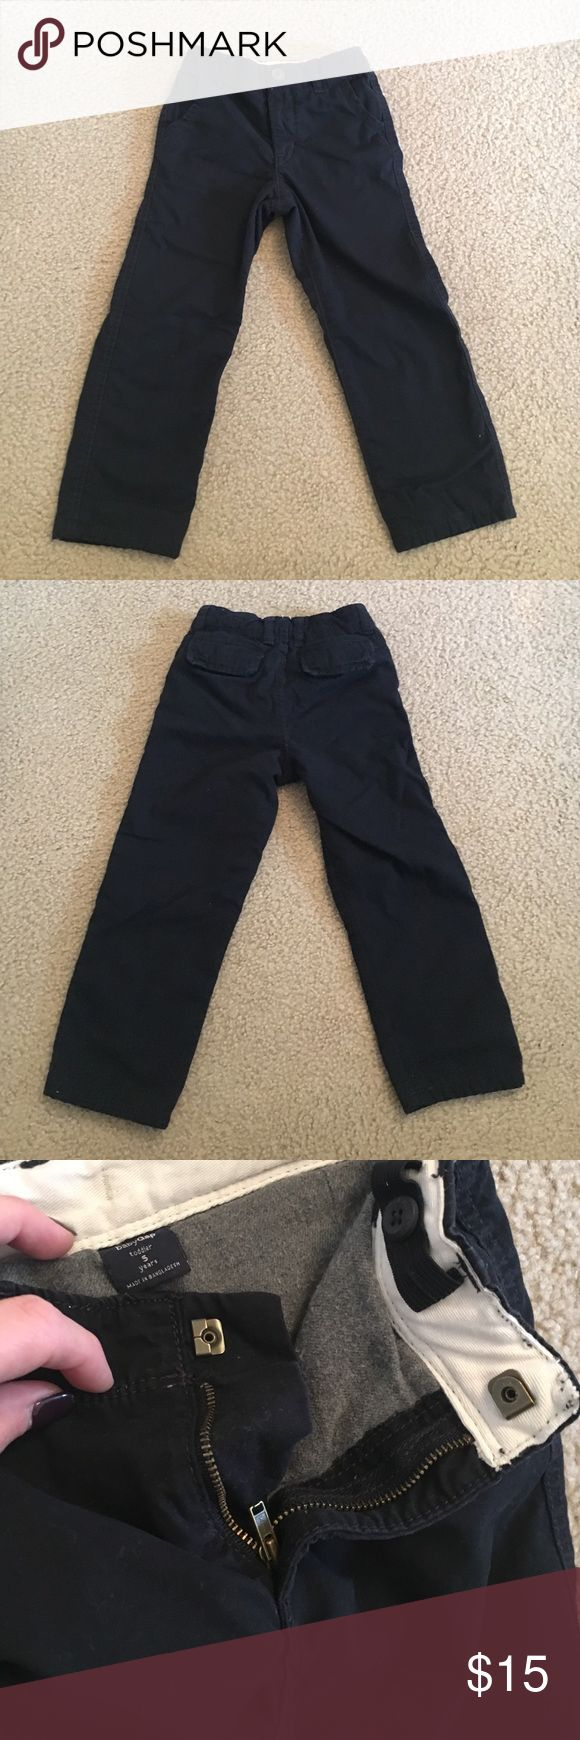 Toddler fleece Khakis Boys blue fleece Khakis perfect for chilly weather. In great condition. GAP Bottoms